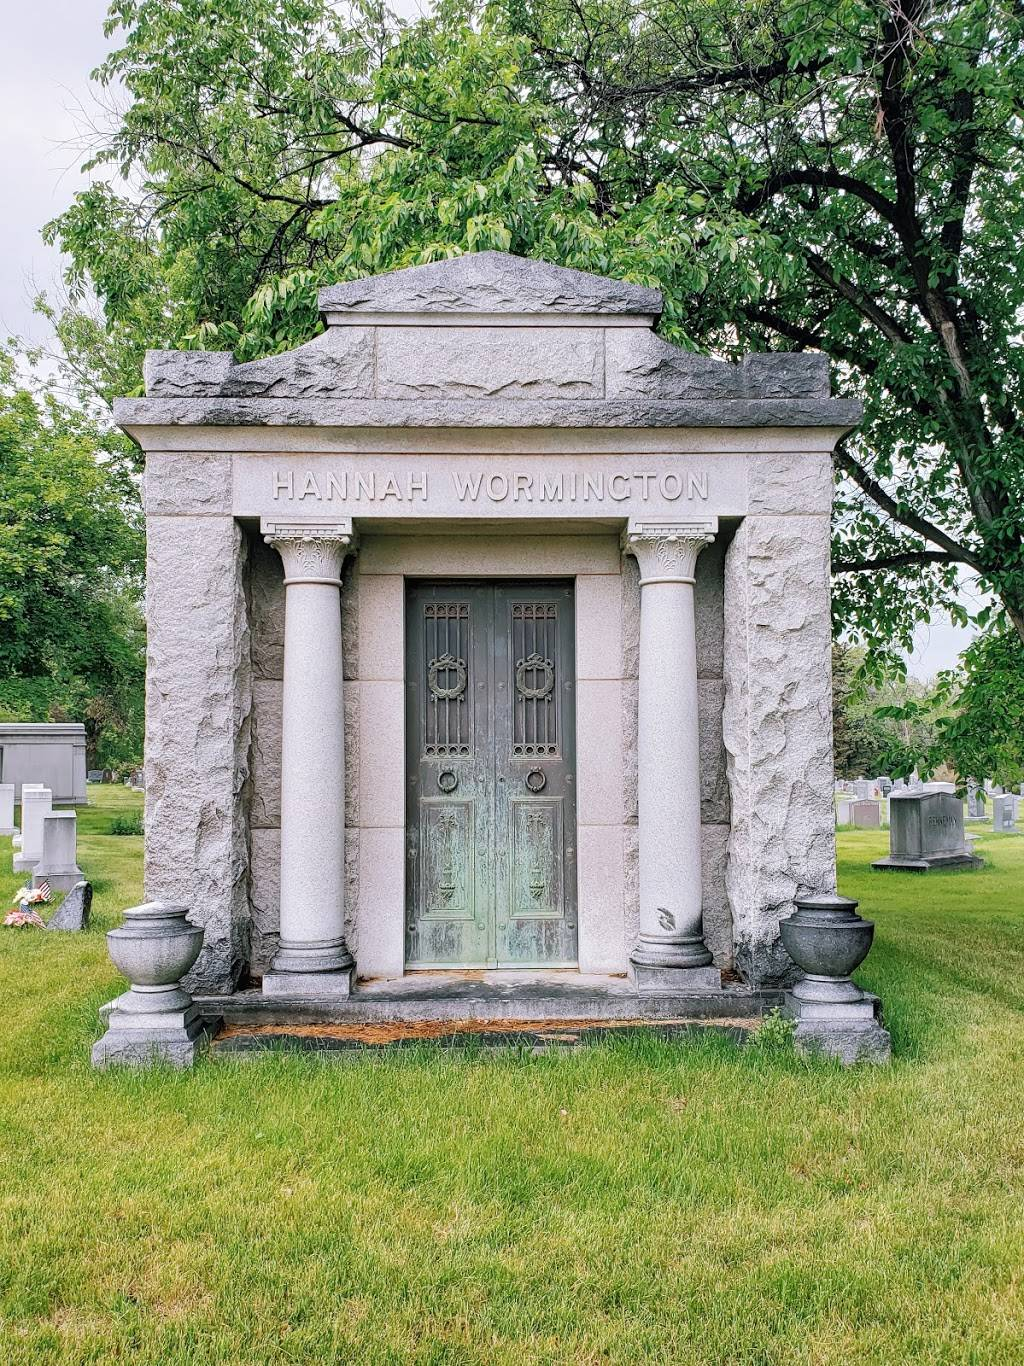 Fairmount Cemetery - cemetery  | Photo 3 of 9 | Address: 430 S Quebec St, Denver, CO 80247, USA | Phone: (303) 399-0692